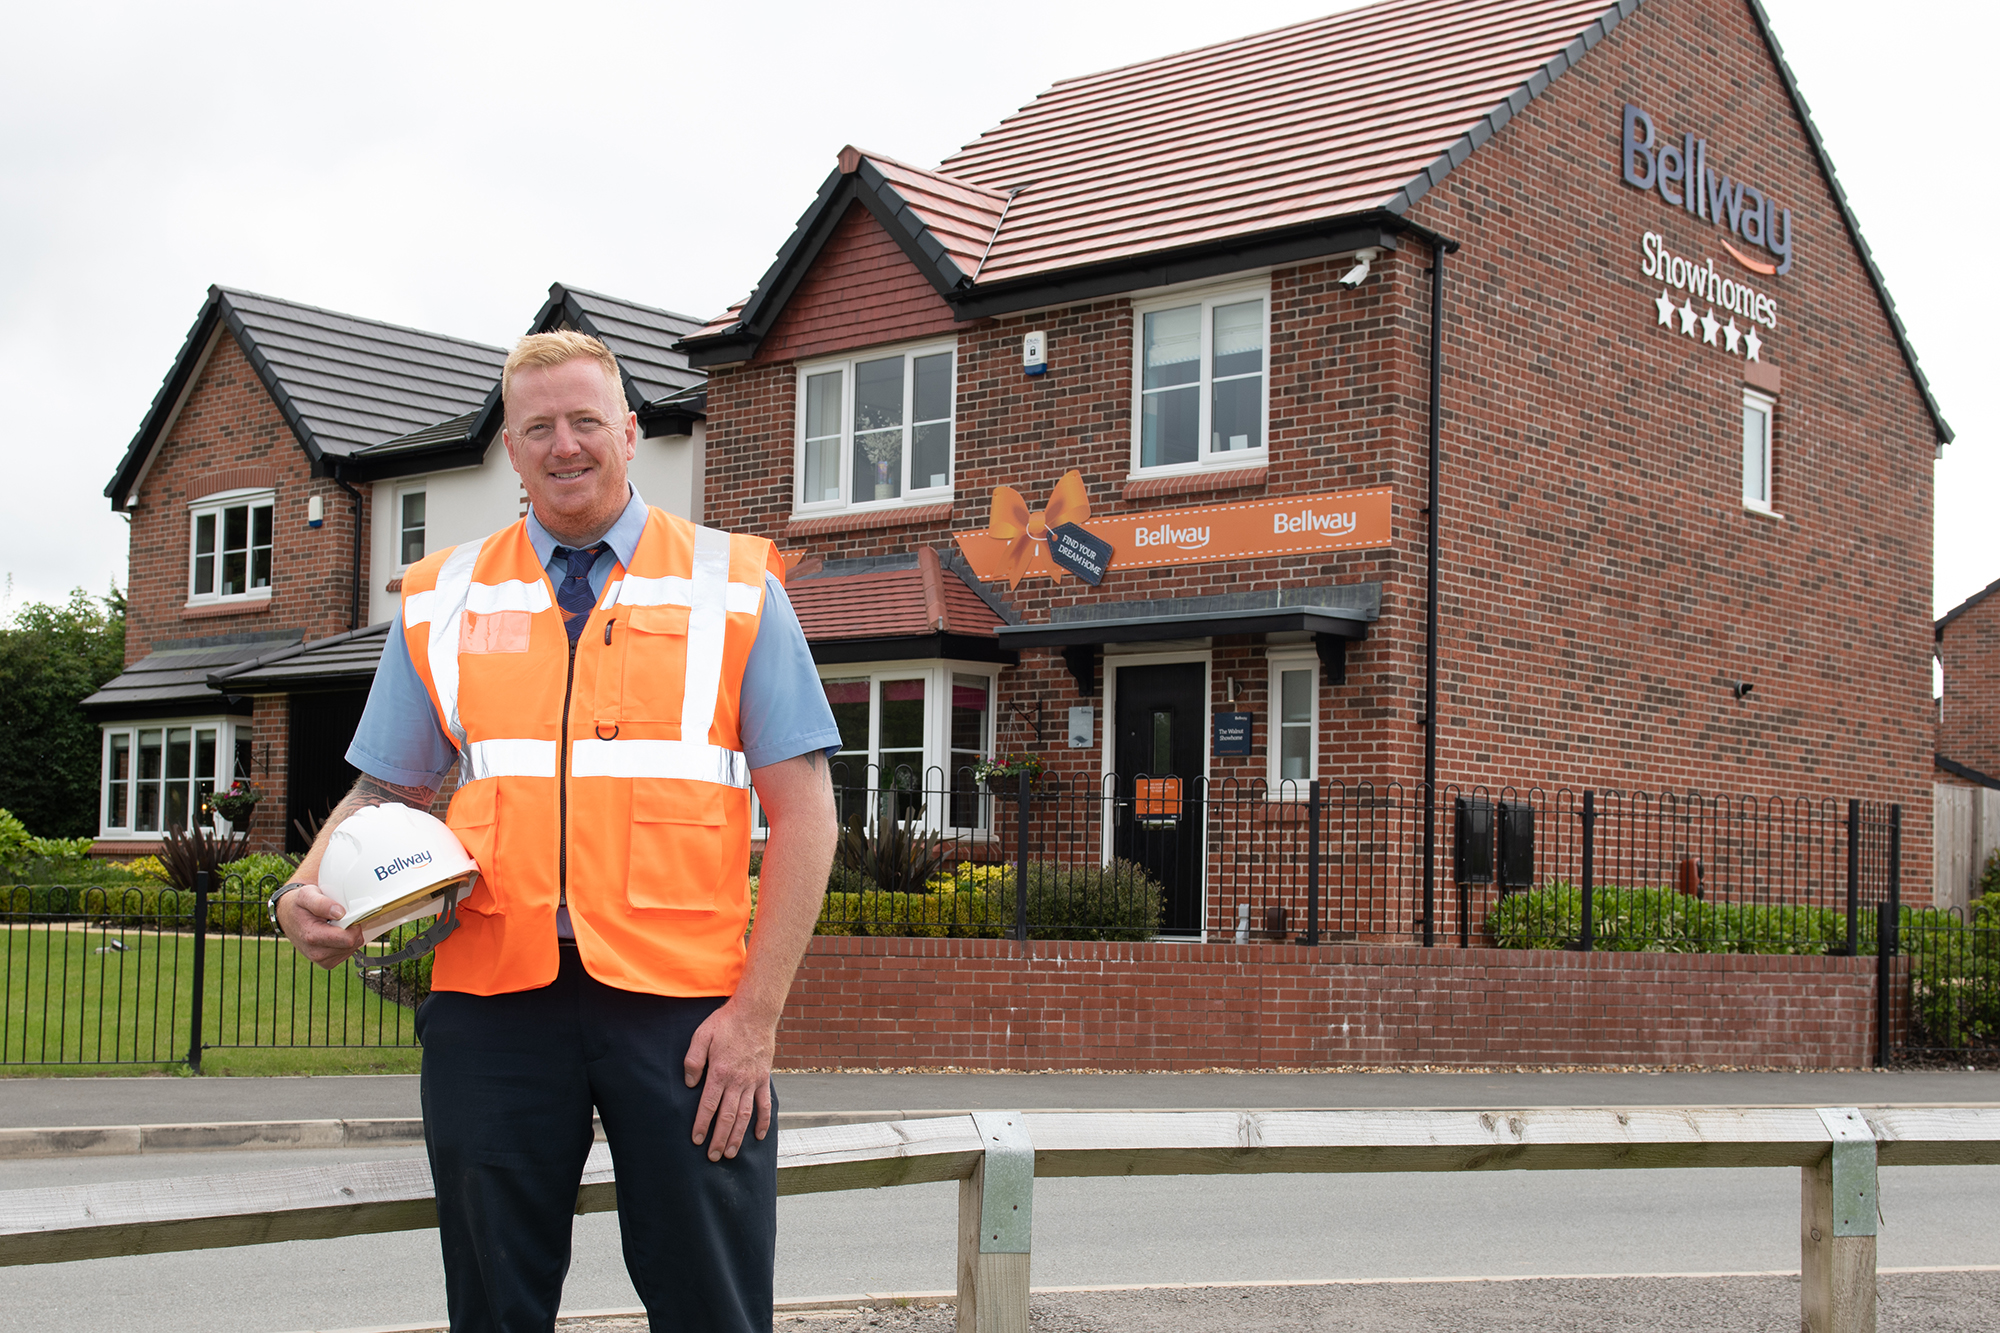 Melling development site manager receives a national award